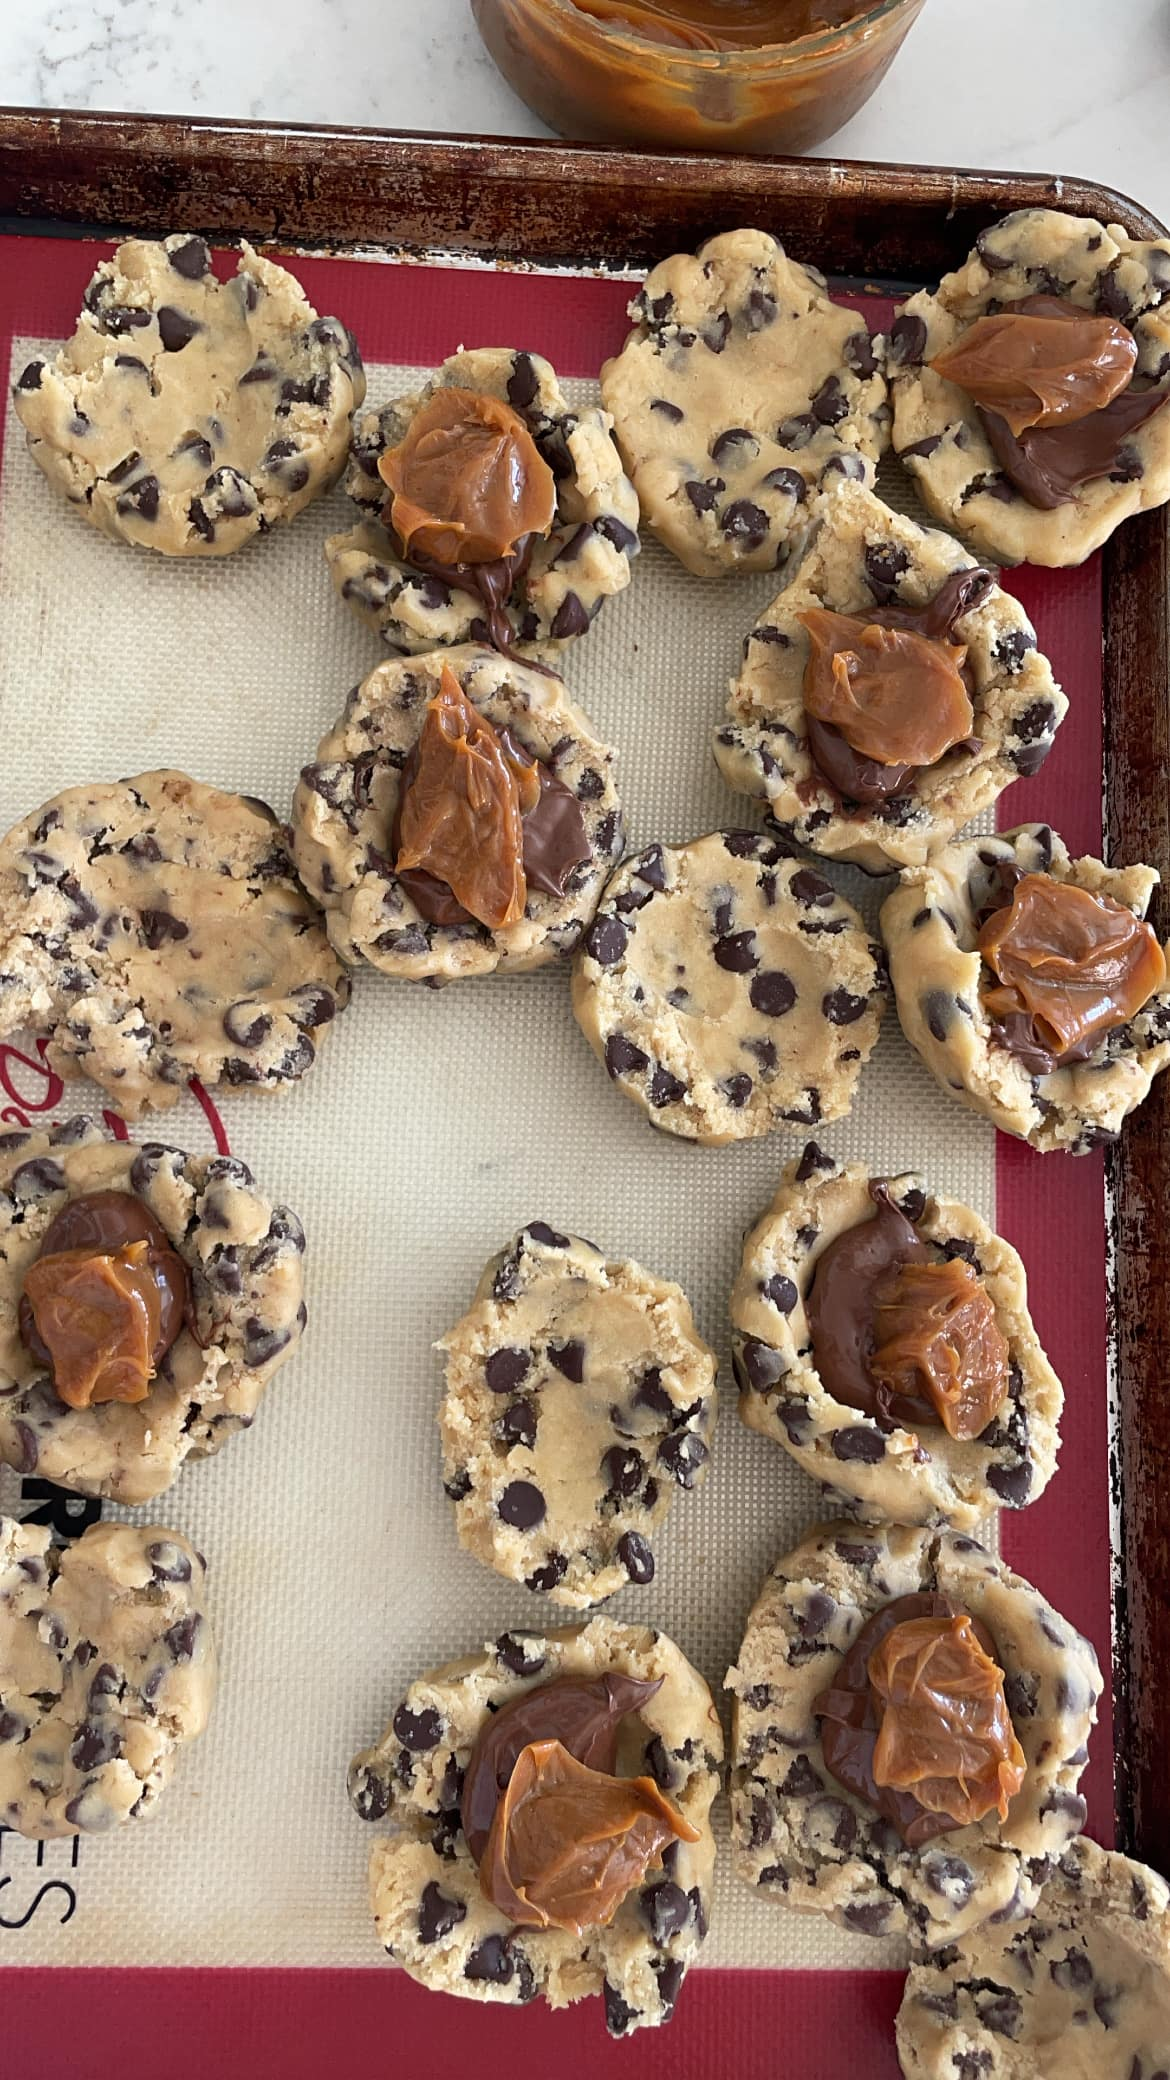 nutella and dulce de leche scooped into chocolate chip cookie dough